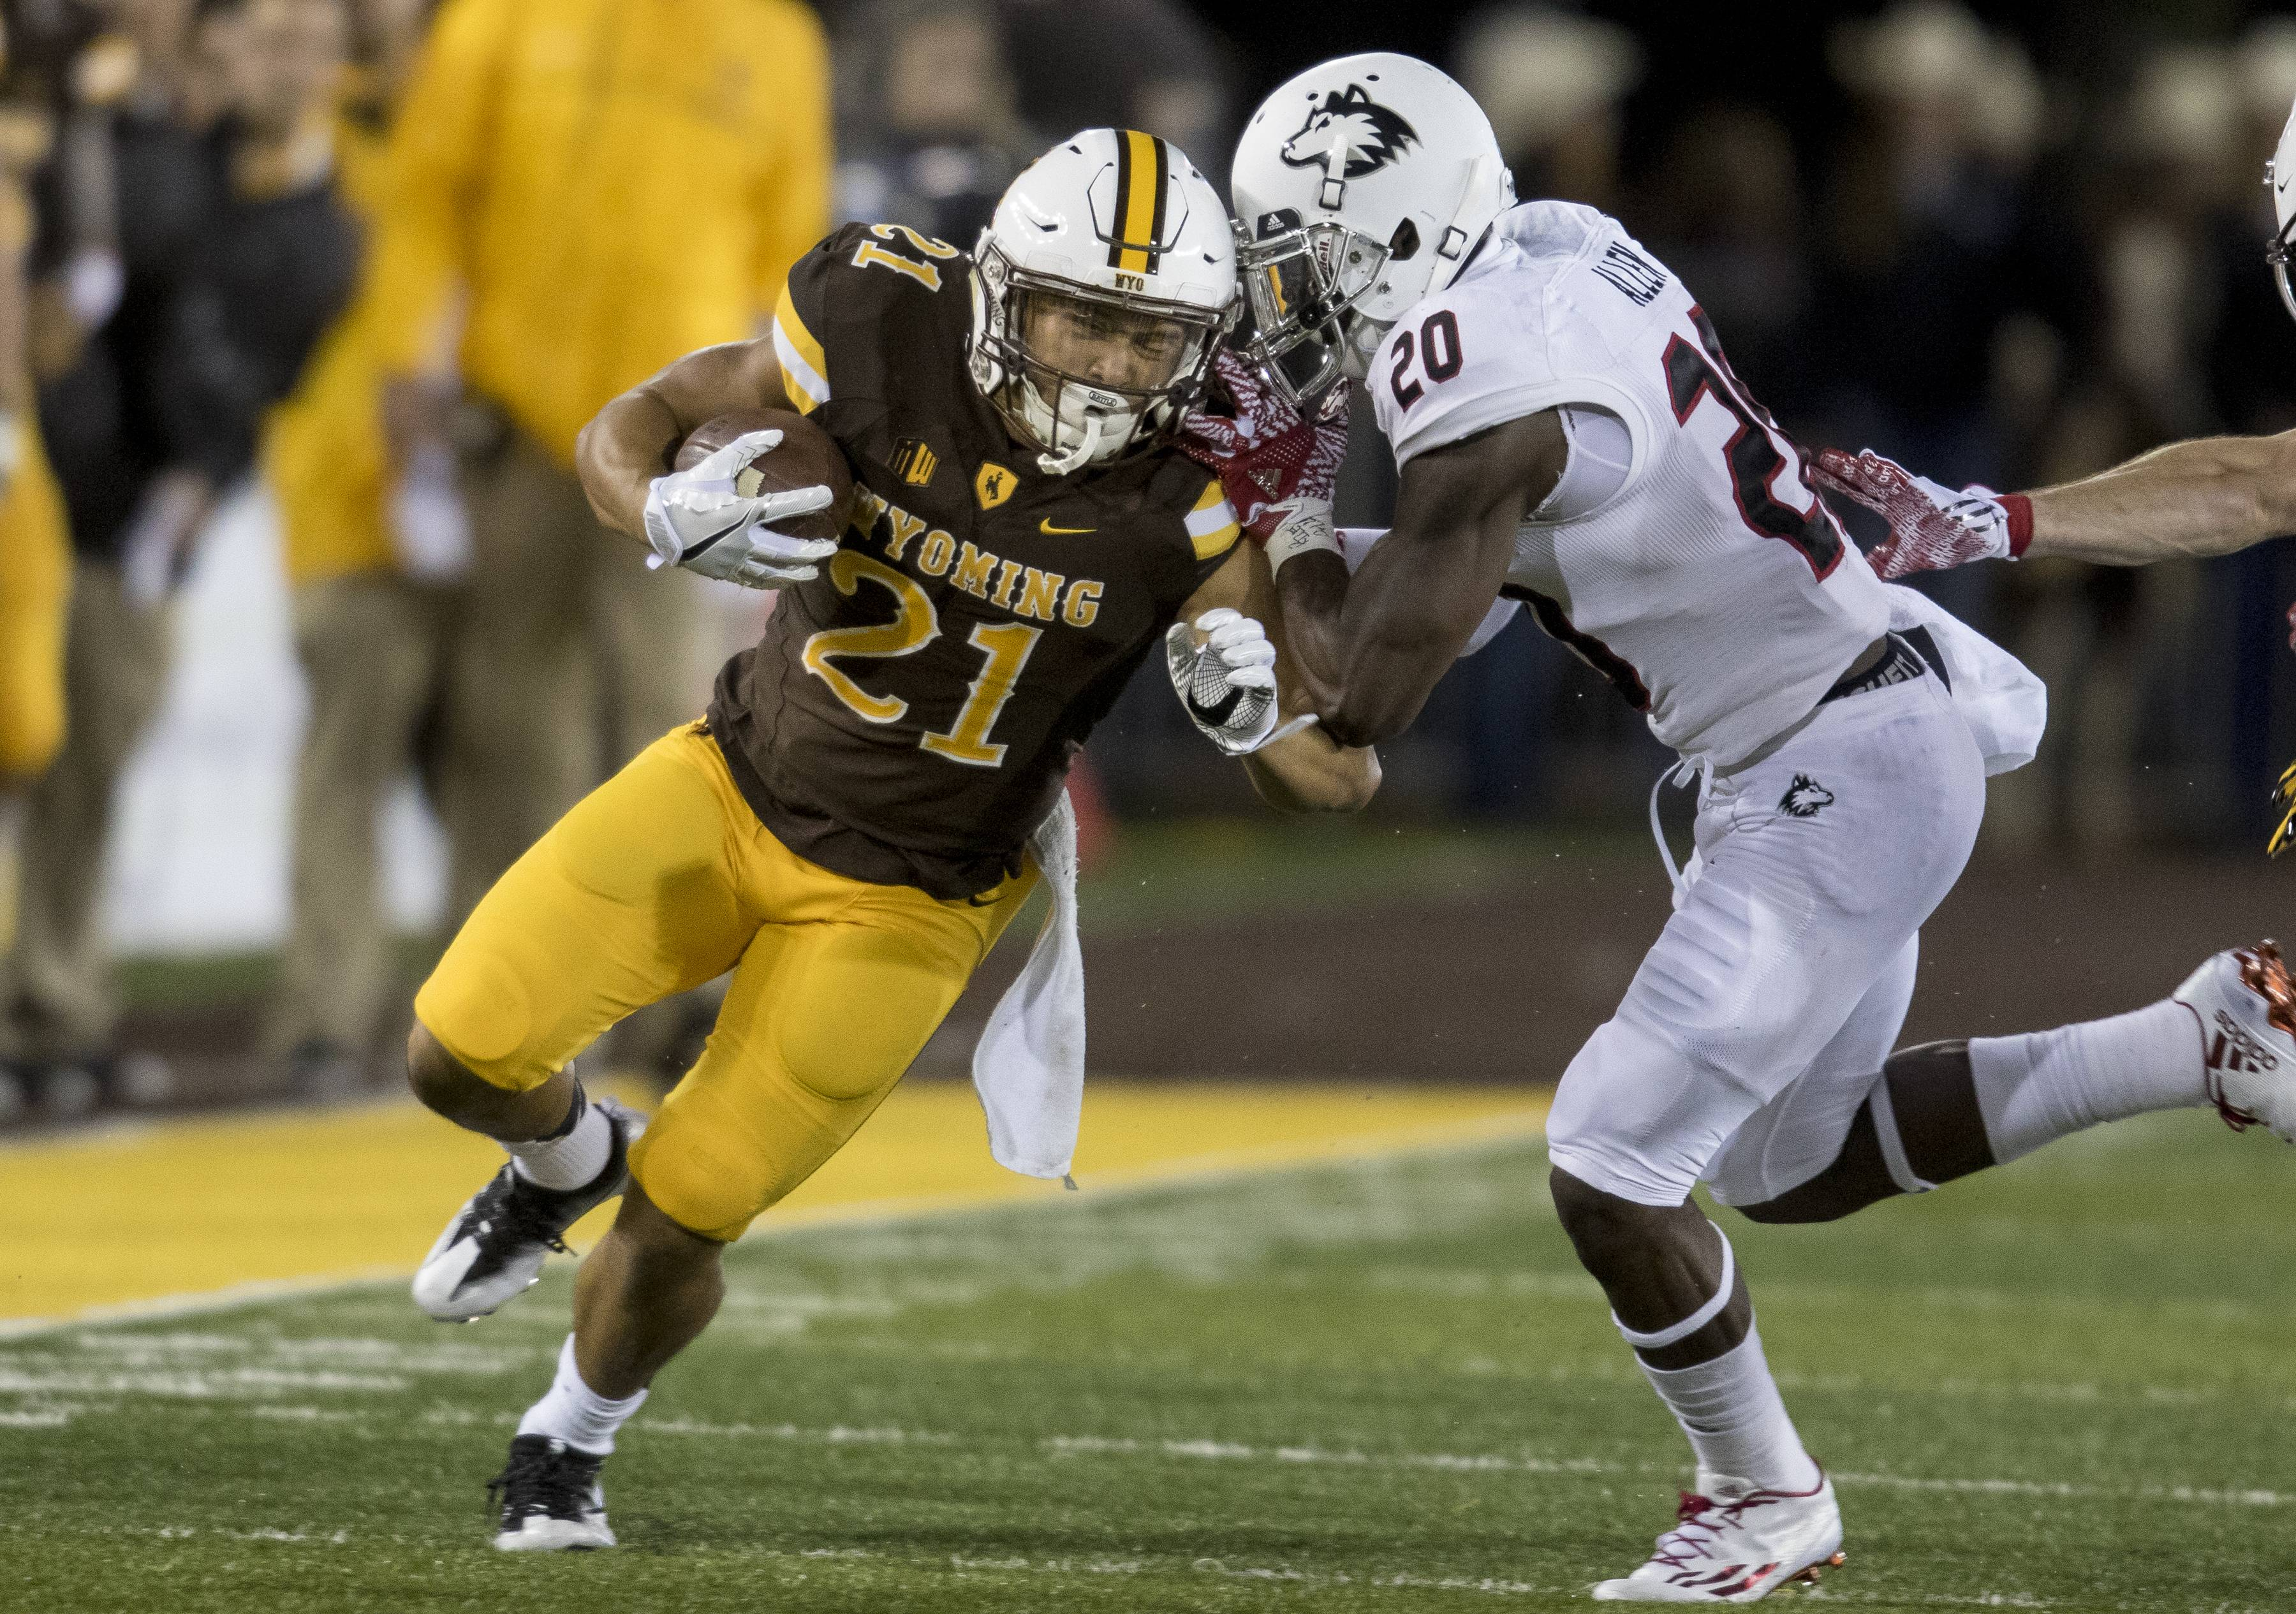 Wyoming running back Shaun Wick runs with the ball during during an NCAA college football game against Northern Illinois Saturday, Sept. 3, 2016 at the War Memorial Stadium in Laramie, Wyo.  (Hugh Carey/The Wyoming Tribune Eagle via AP)